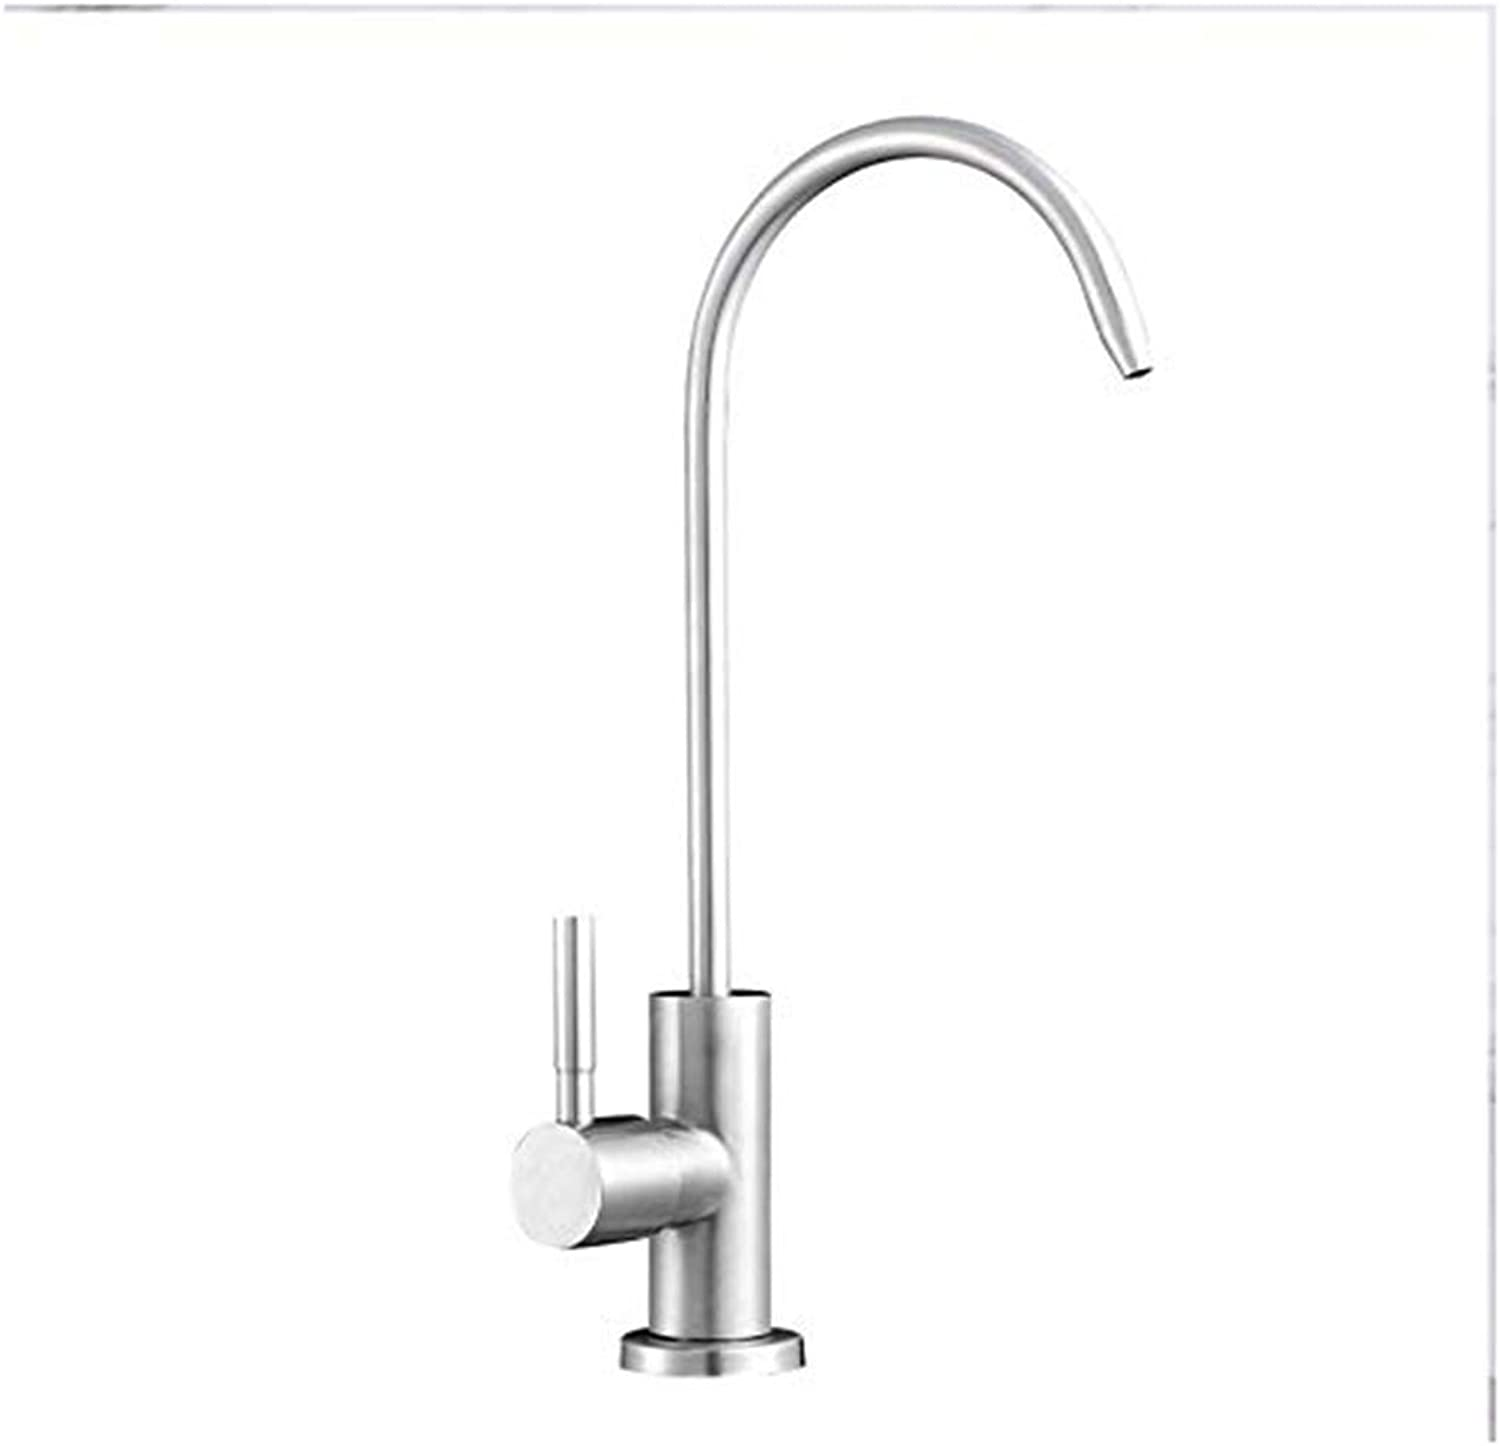 Modern Double Basin Sink Hot and Cold Water Faucetr1Hf100I